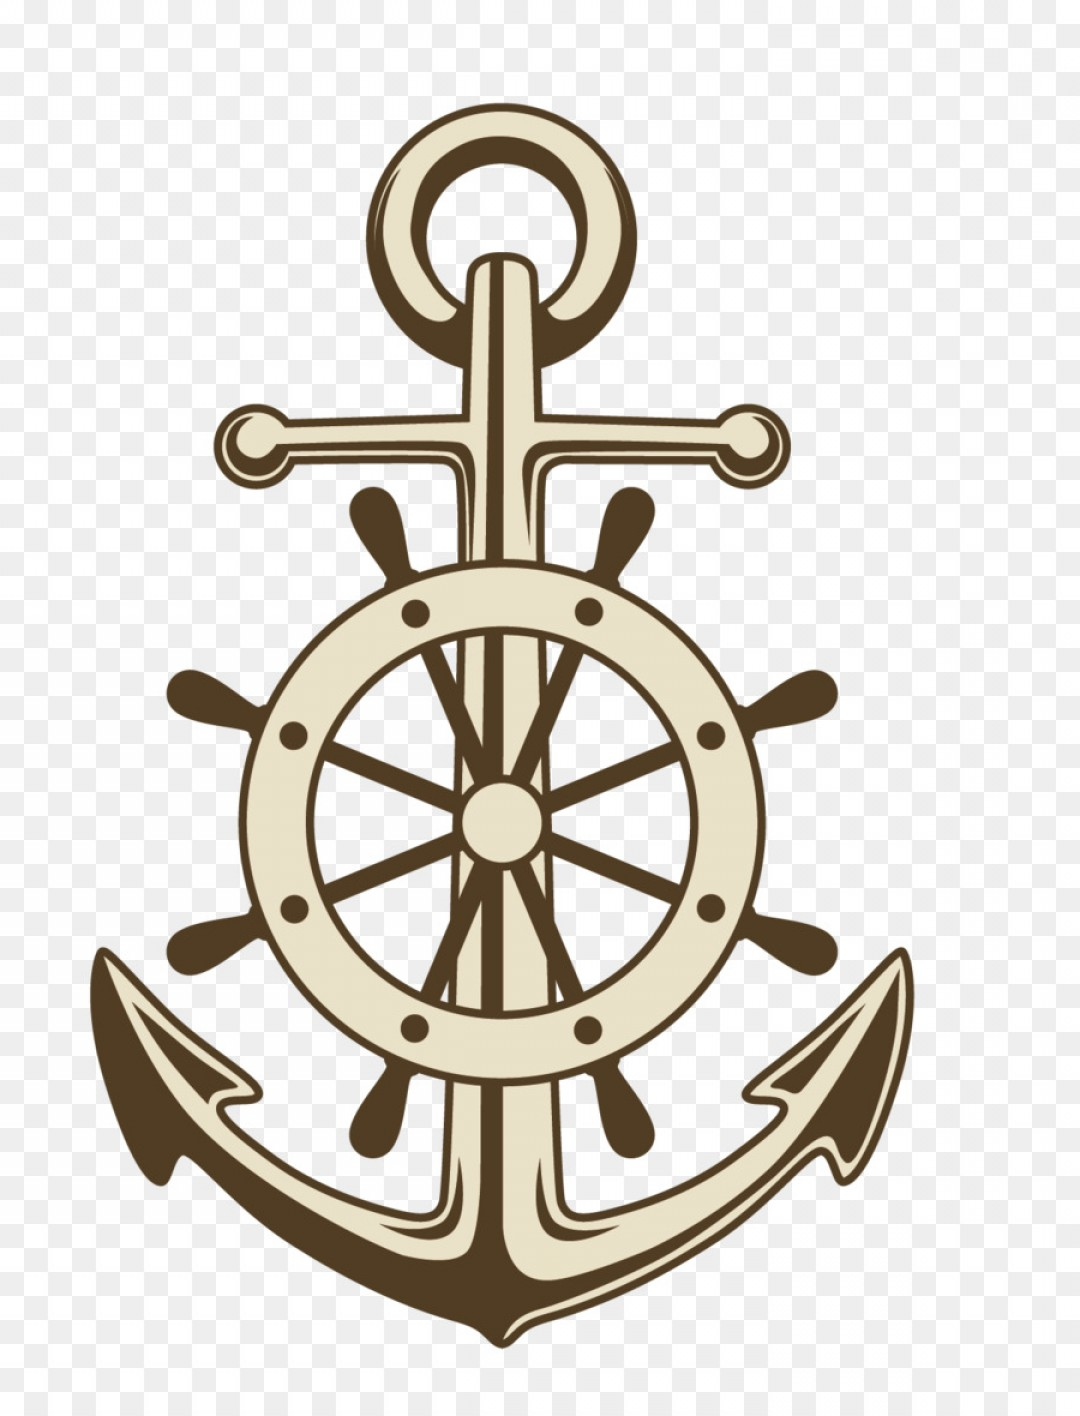 Png Anchor Ships Wheel Paper Clip Art Vector Painted A.